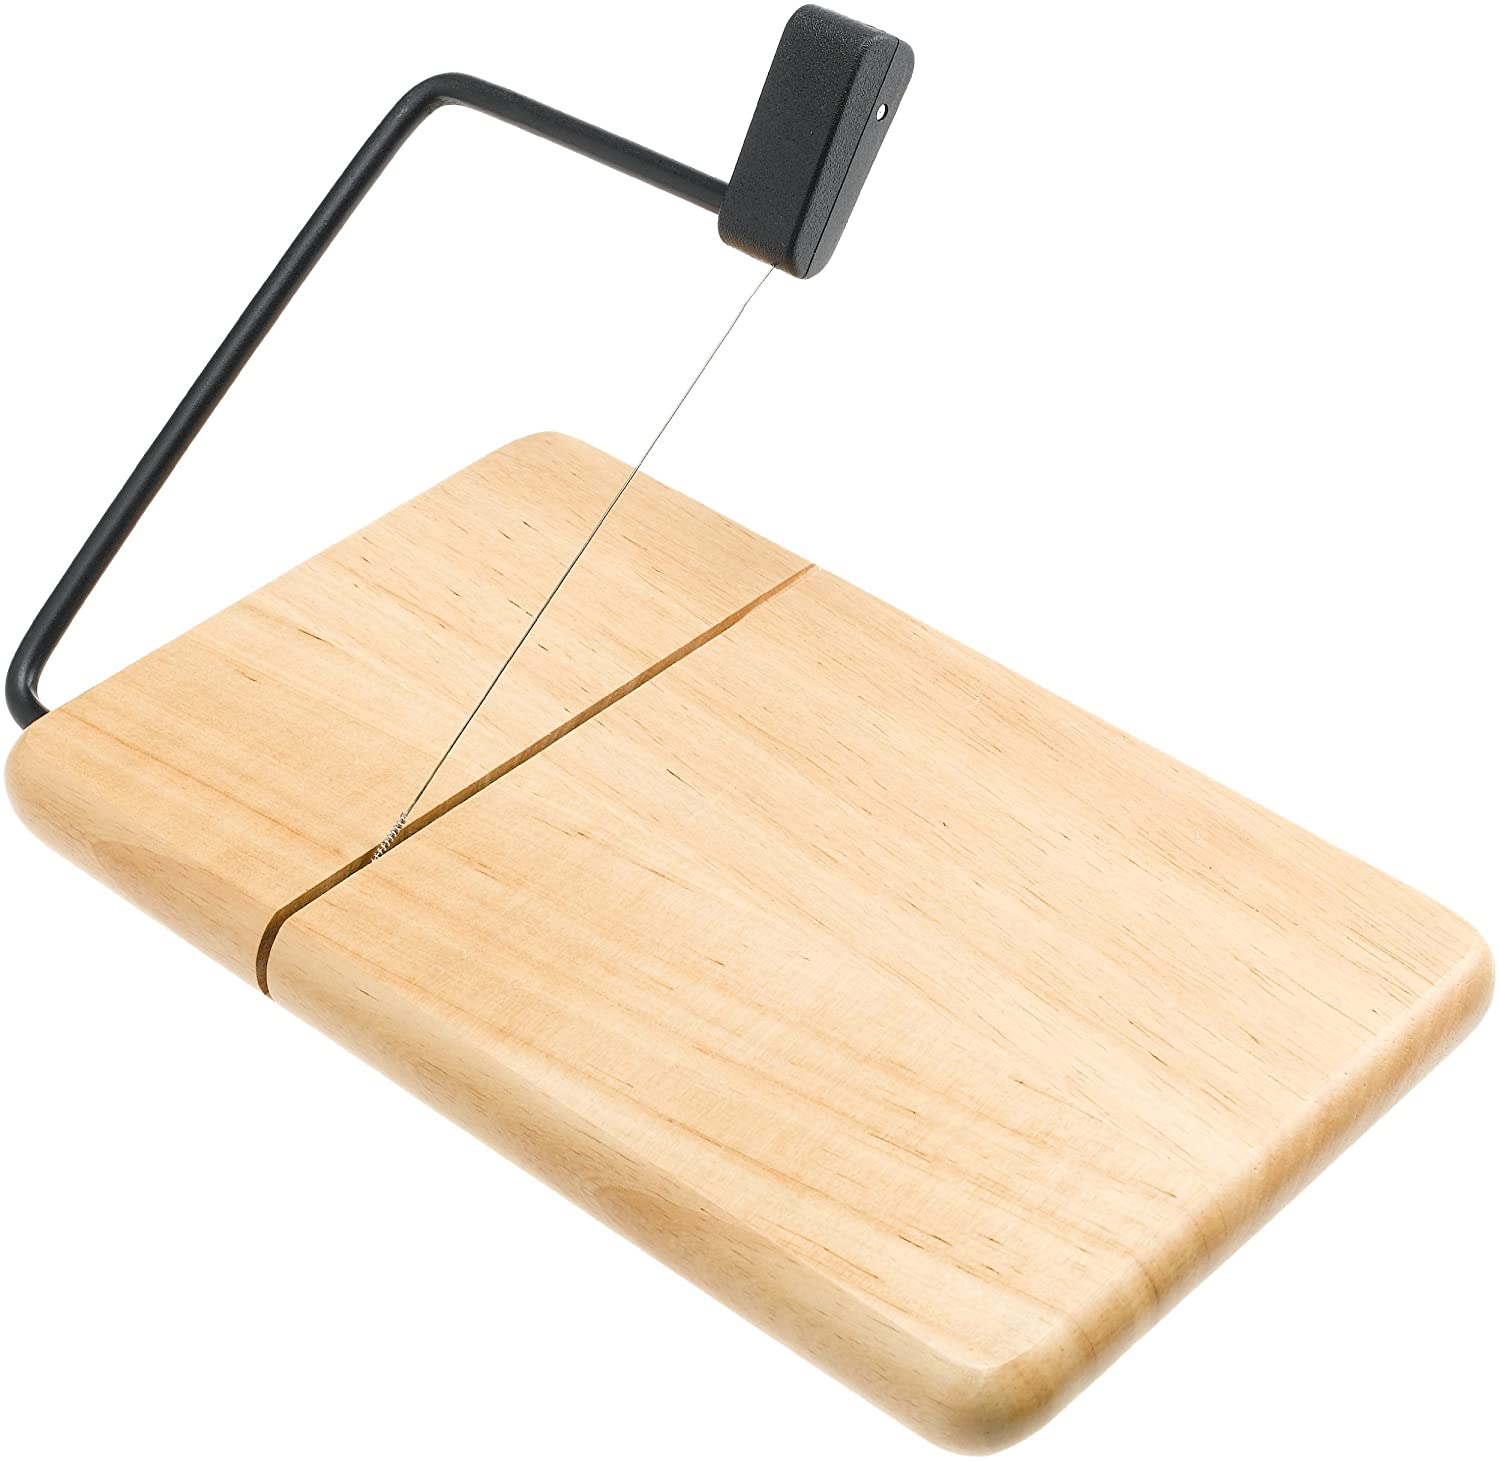 Best Cheese Slicers Reviews 2019: Top 5+ Recommended 4 #cookymom